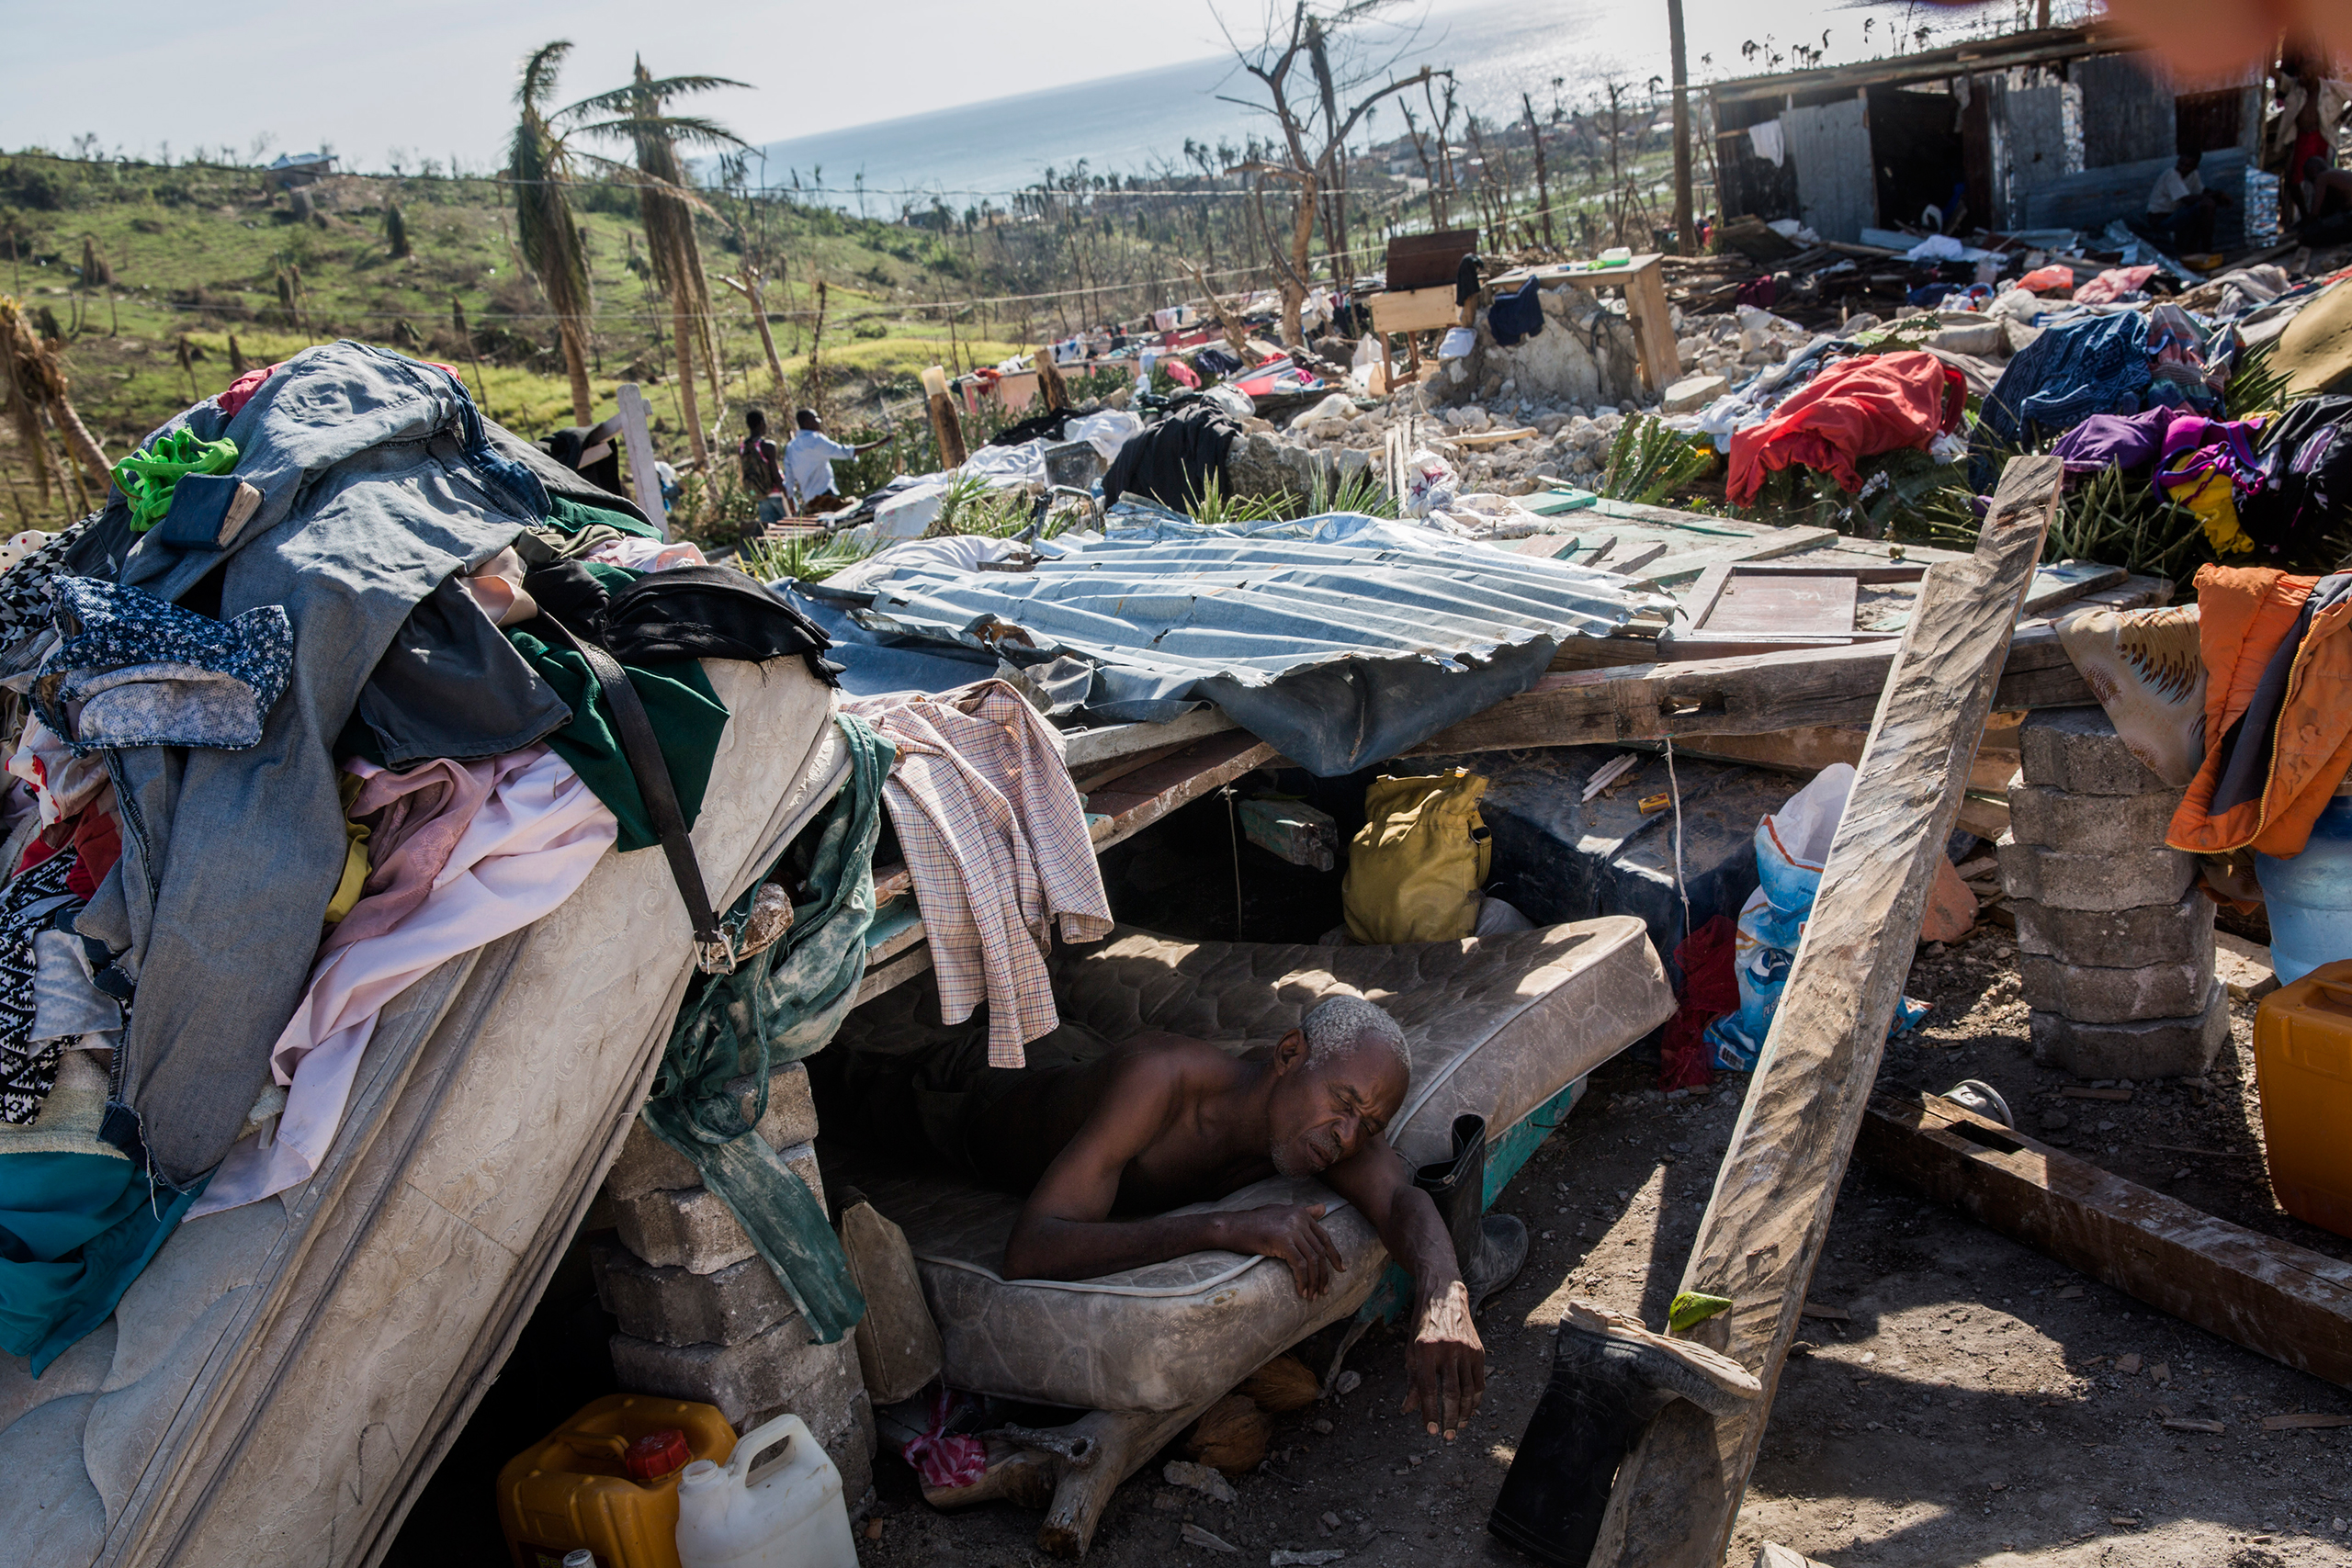 A man who is too ill to walk rests in a makeshift shelter on the site of his destroyed home in Roche-a-Bateau, southwestern Haiti, on Oct. 8, 2016.